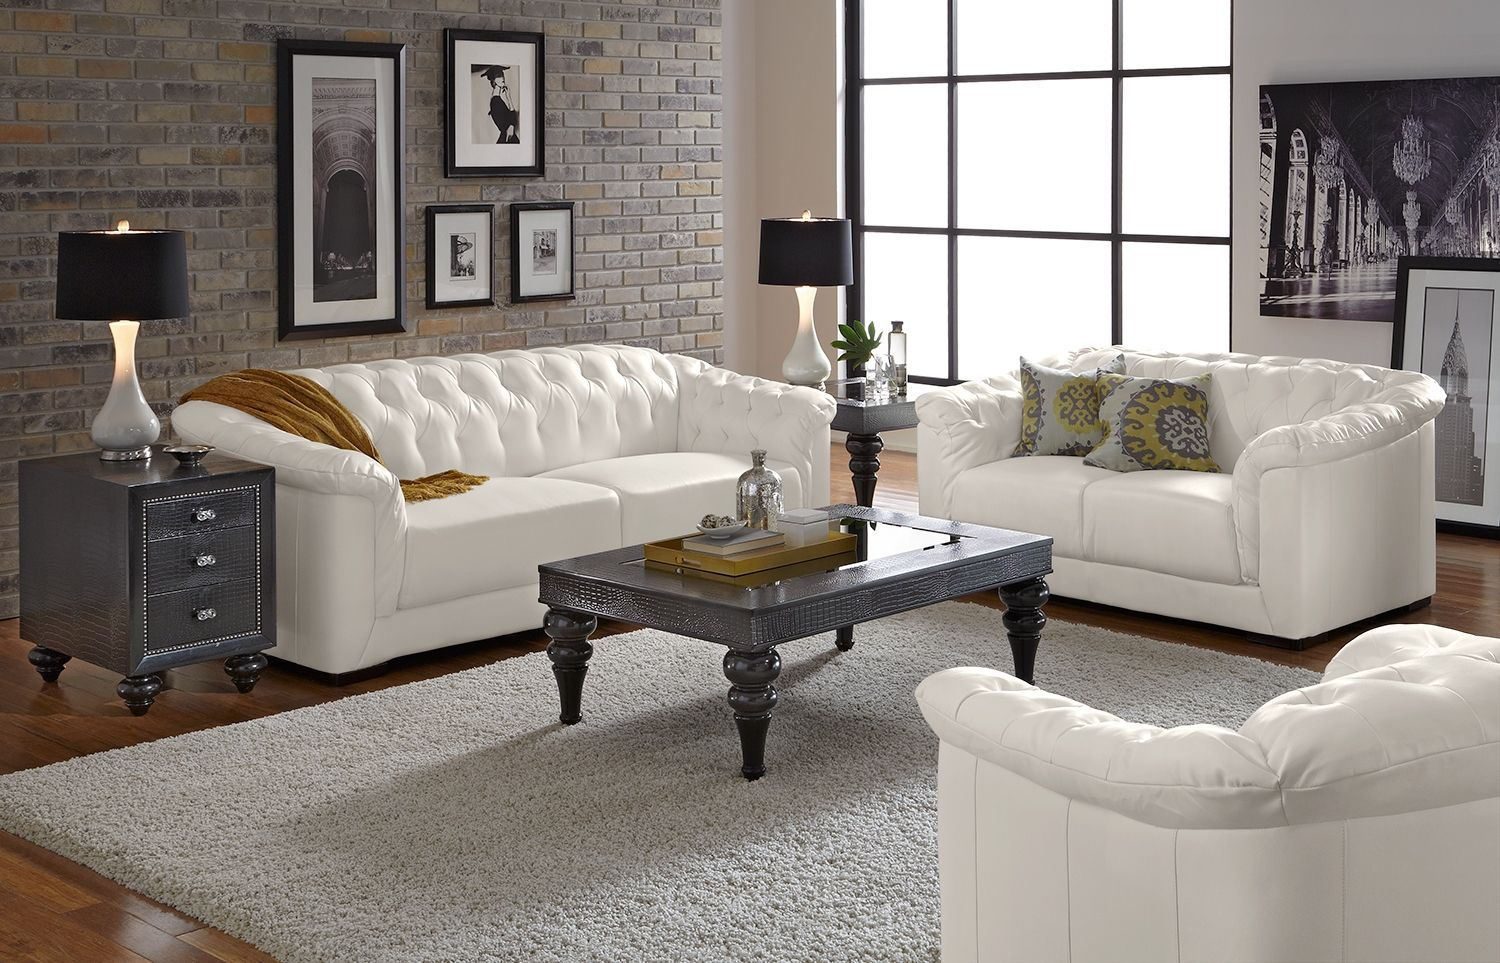 21 Living Room Tufted Leather Sofa Designs Leather Sofa Living